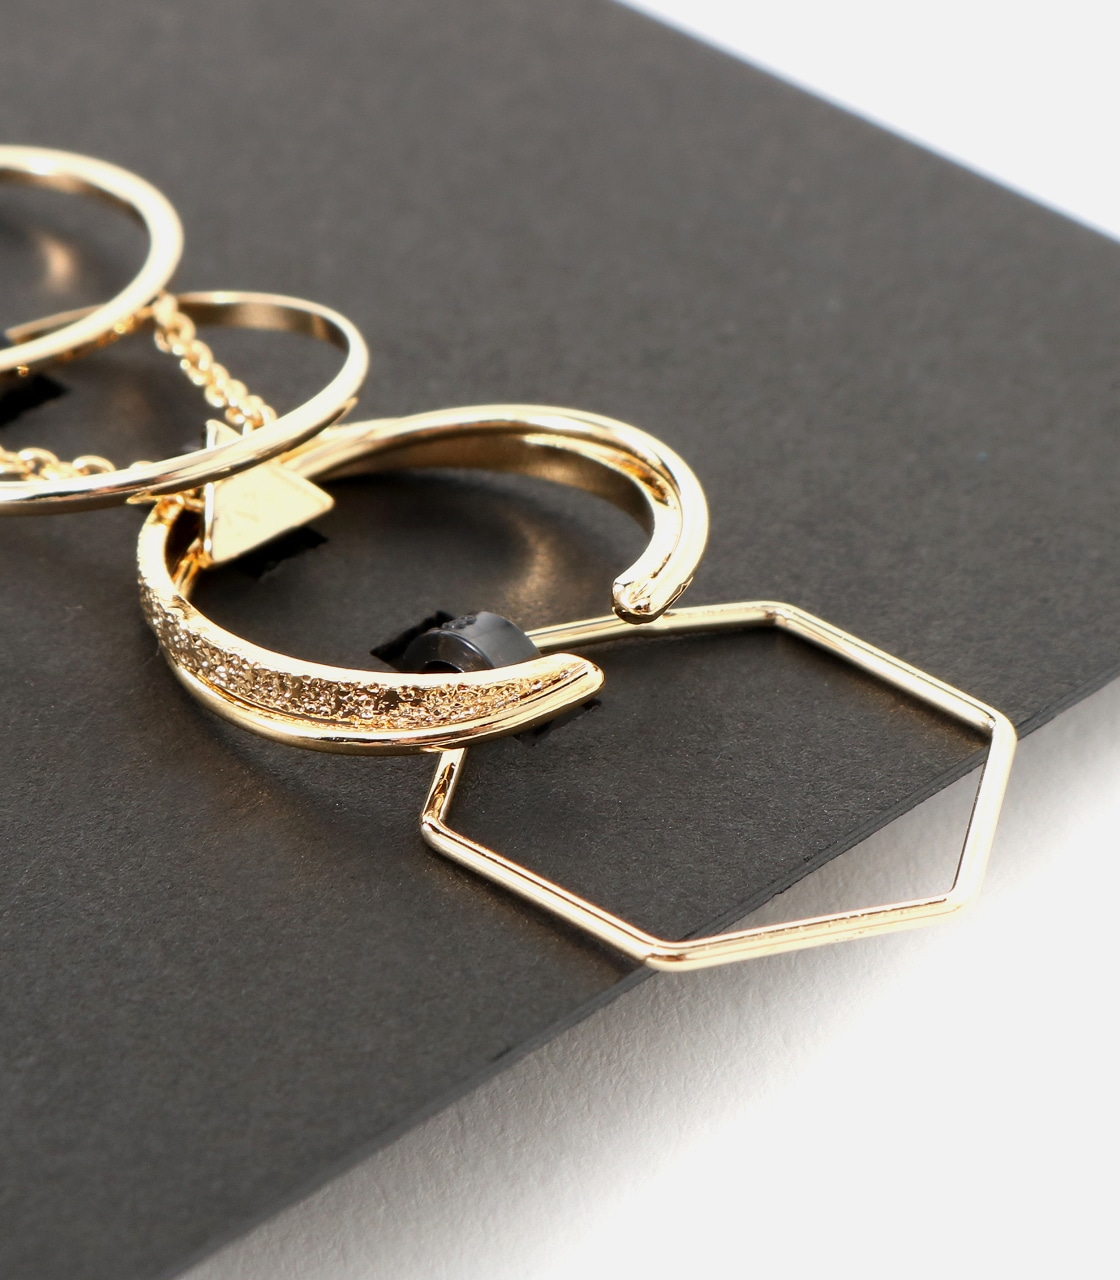 【AZUL BY MOUSSY】チェーンモチーフ5本SETリング 詳細画像 L/GLD 7